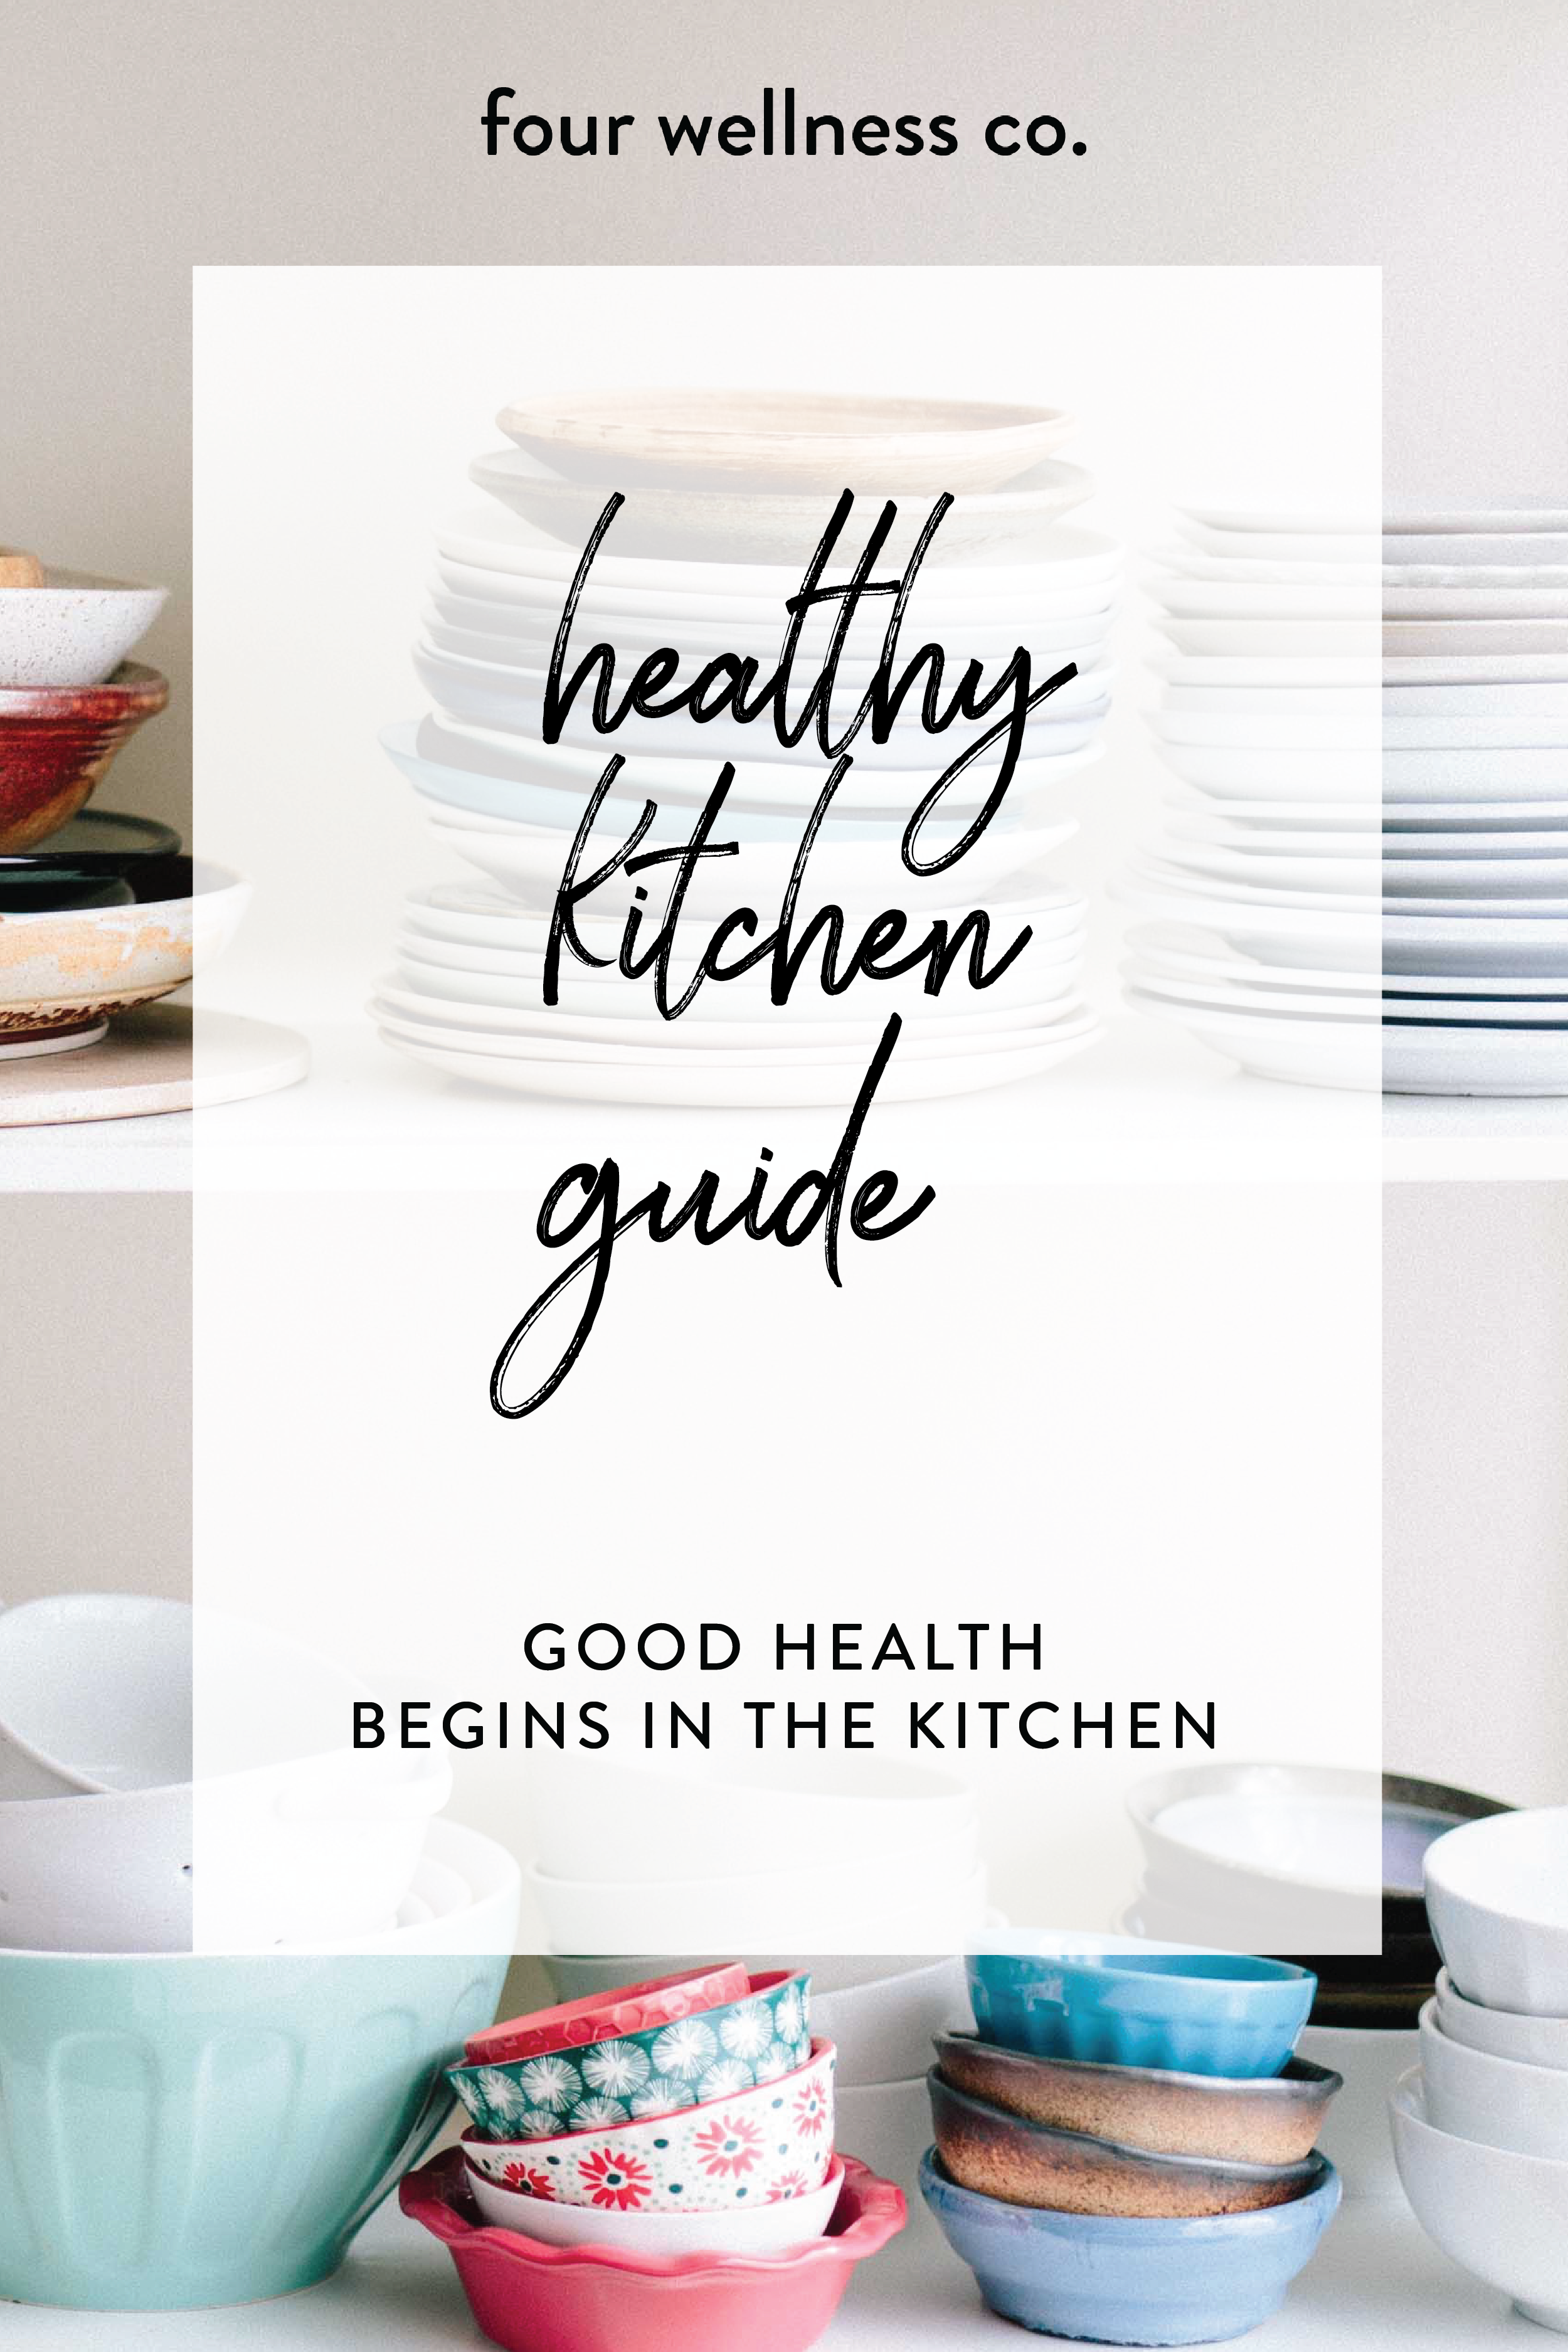 Healthy Kitchen Guide // Four Wellness Co. // Nontoxic kitchen essentials for a healthy home: cookware, kitchen supplies, healthy cooking habits